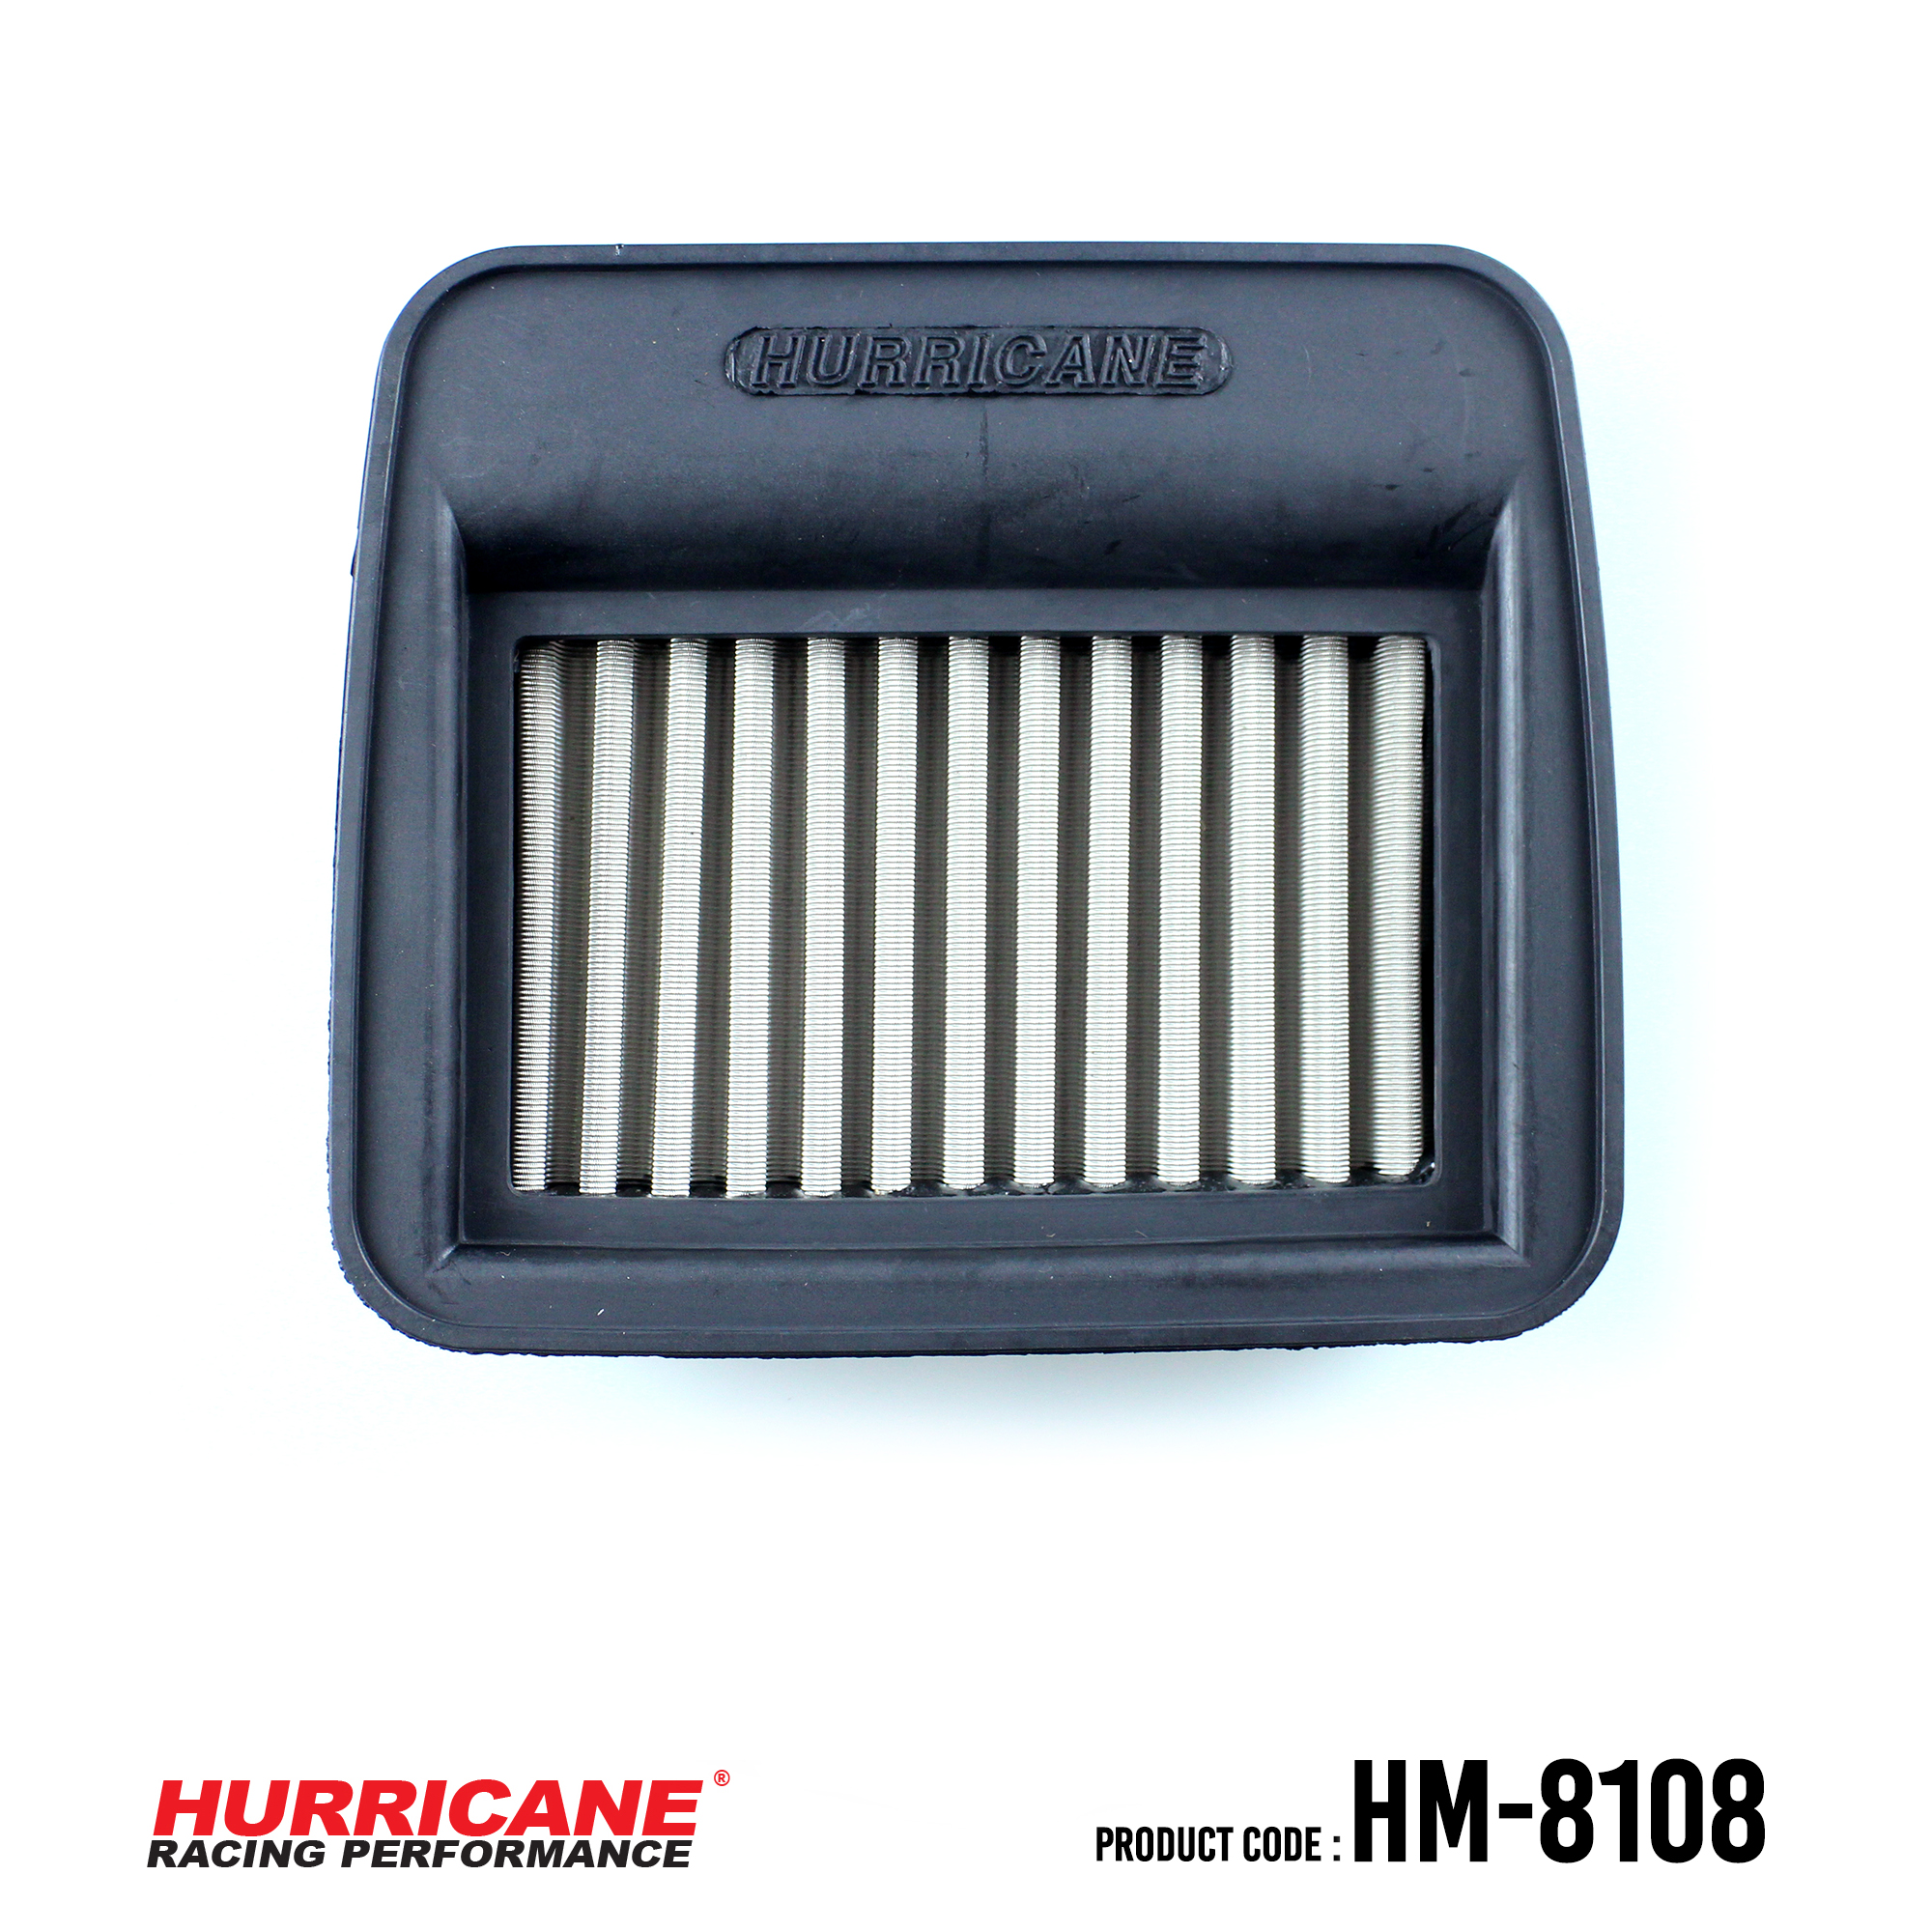 HURRICANE STAINLESS STEEL AIR FILTER FOR HM-8108 Yamaha